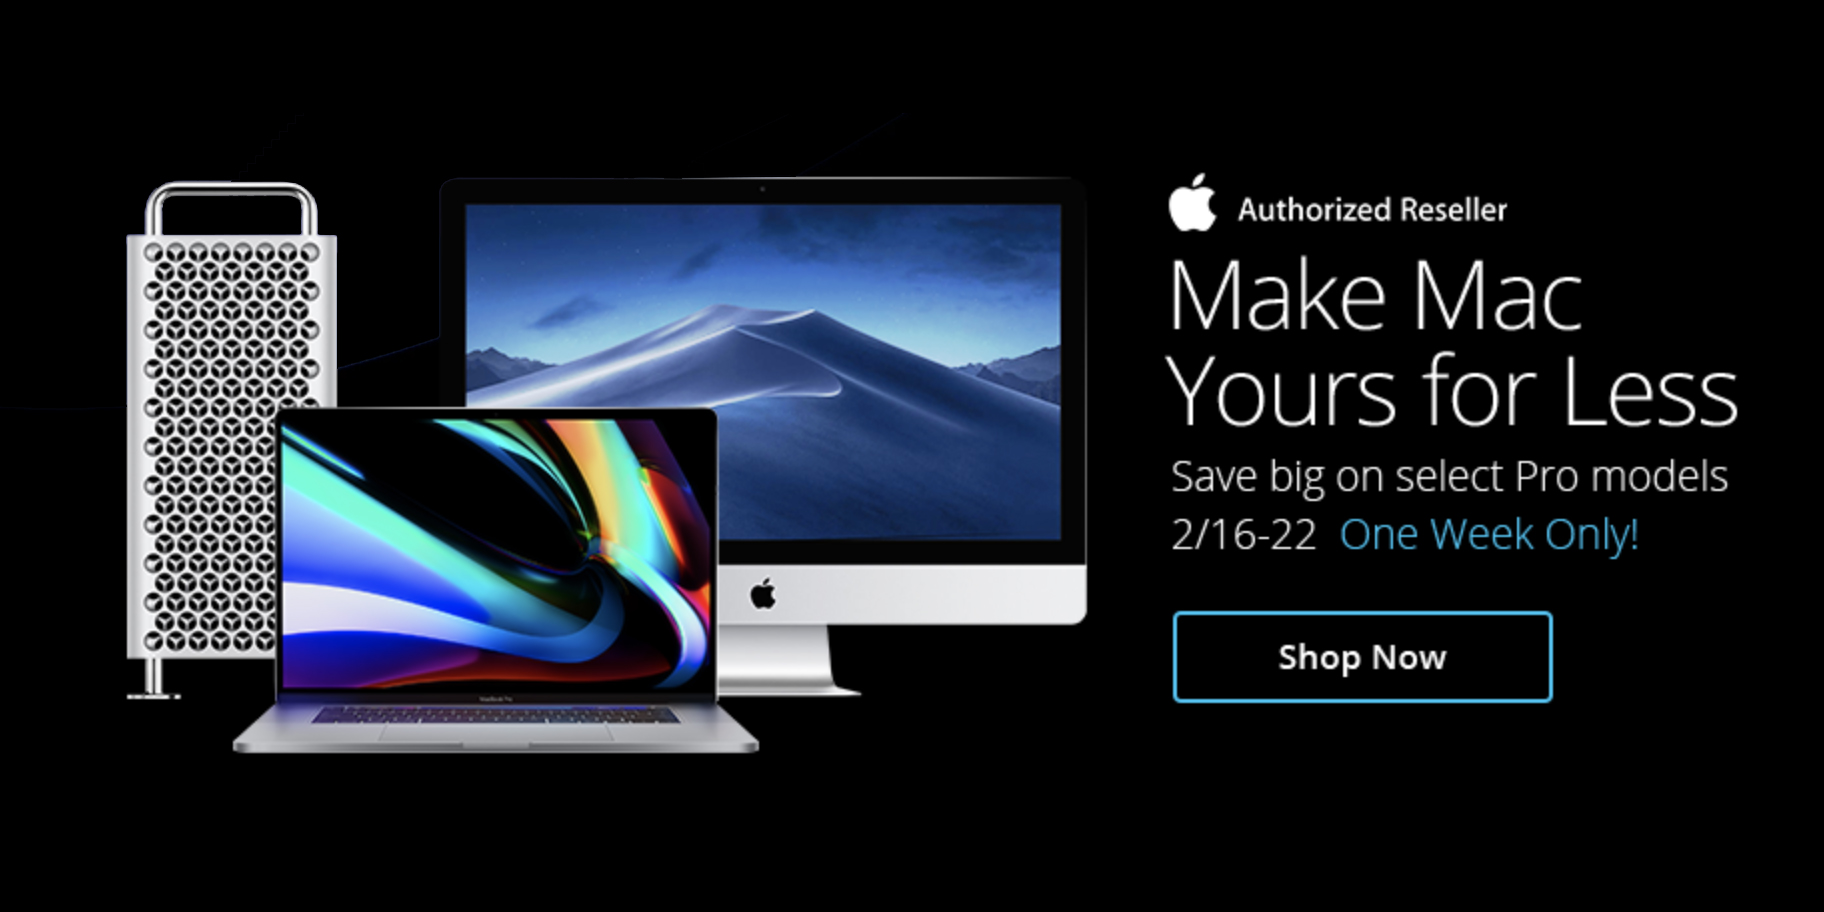 B&H offers hefty discounts on MacBook Pro, iMac, and Mac Pro for a limited time - 9to5Toys